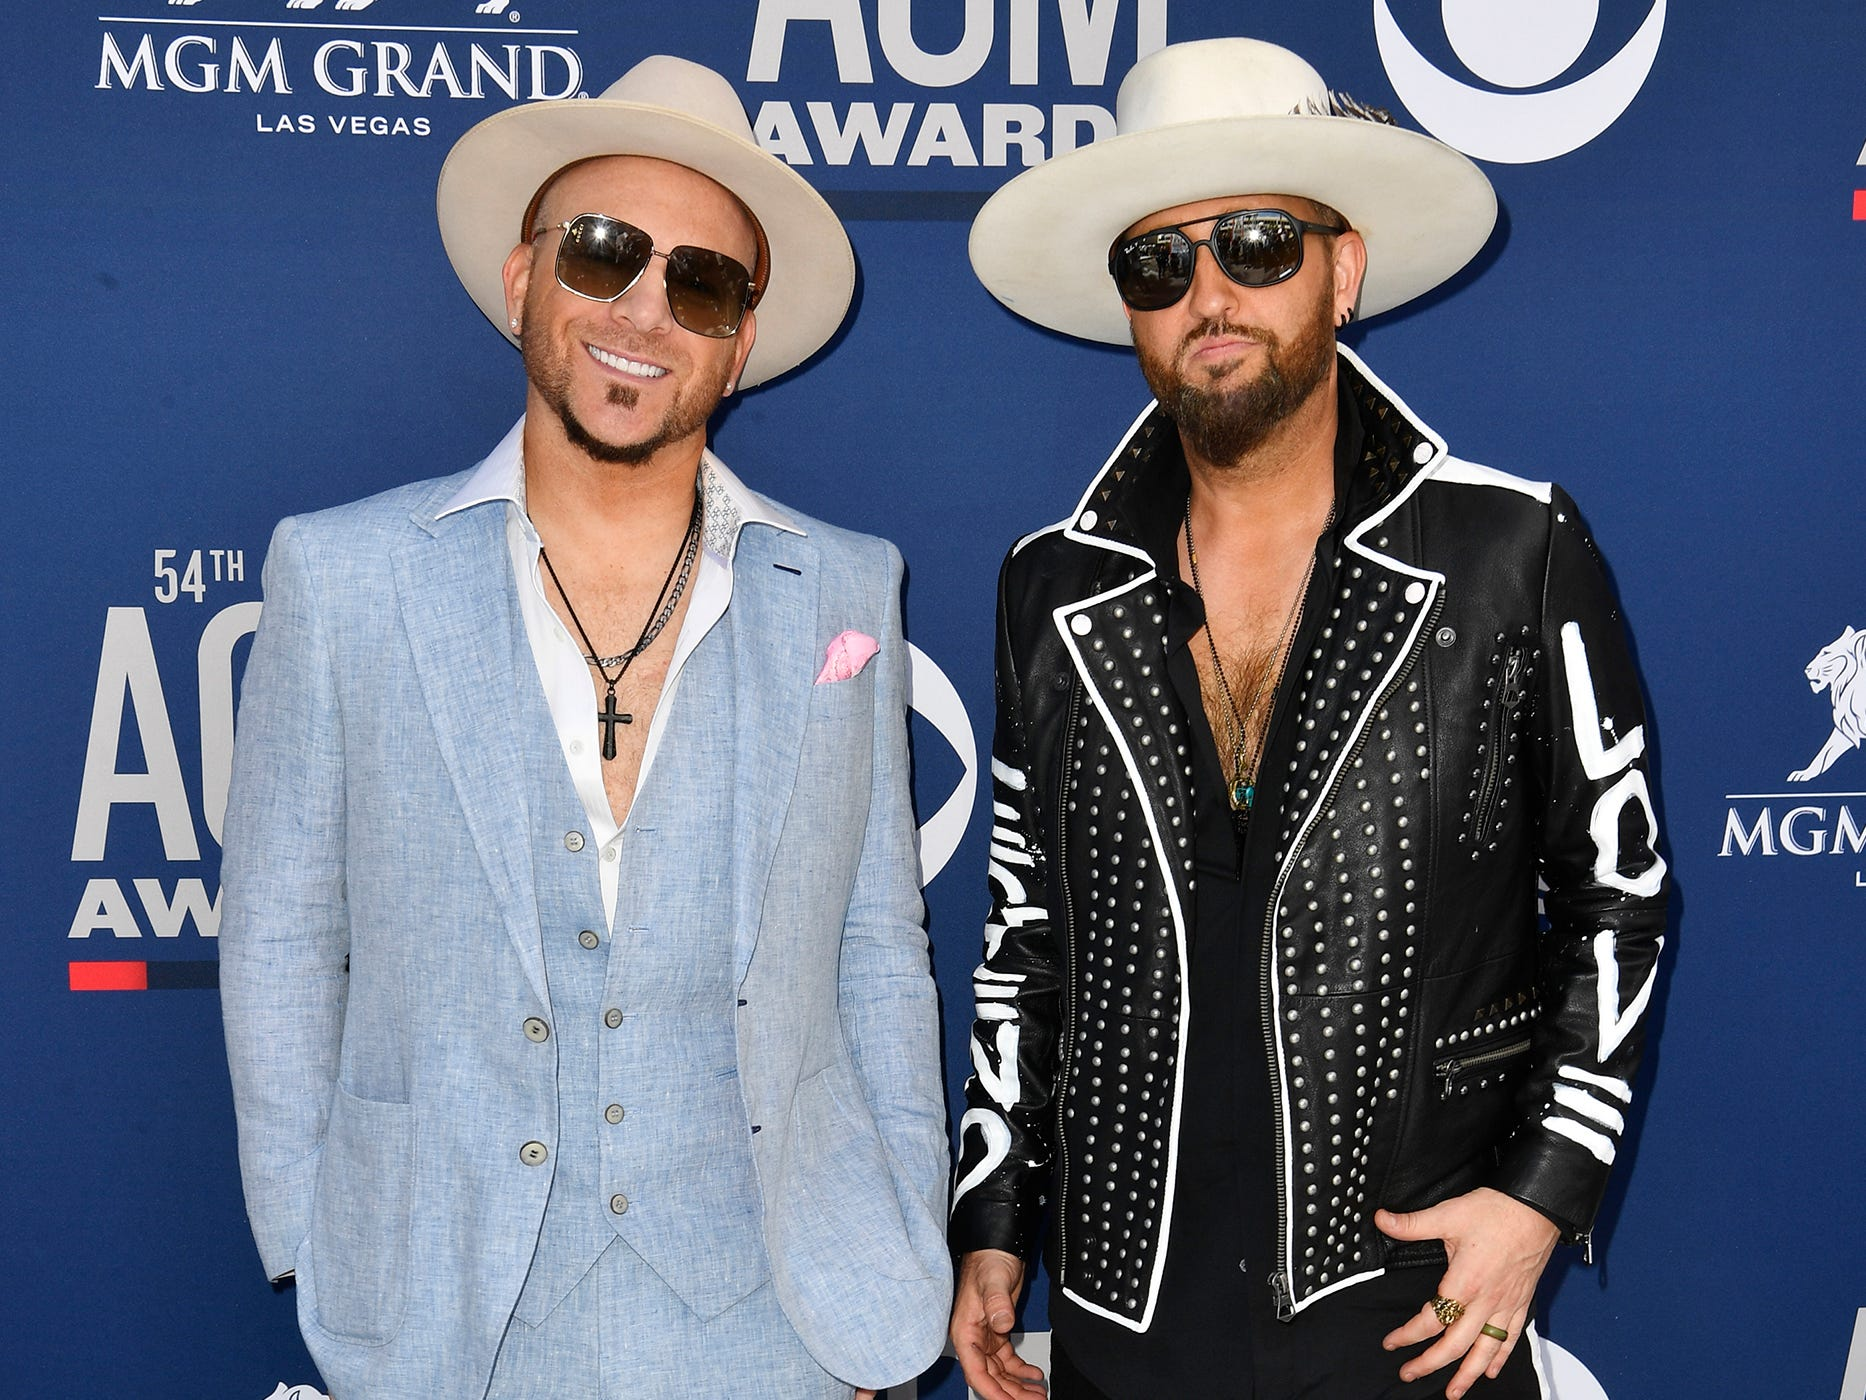 Chris Lucas, left, and Preston Brust of LOCASH, walk the red carpet at the 54TH Academy of Country Music Awards Sunday, April 7, 2019, in Las Vegas, Nev.